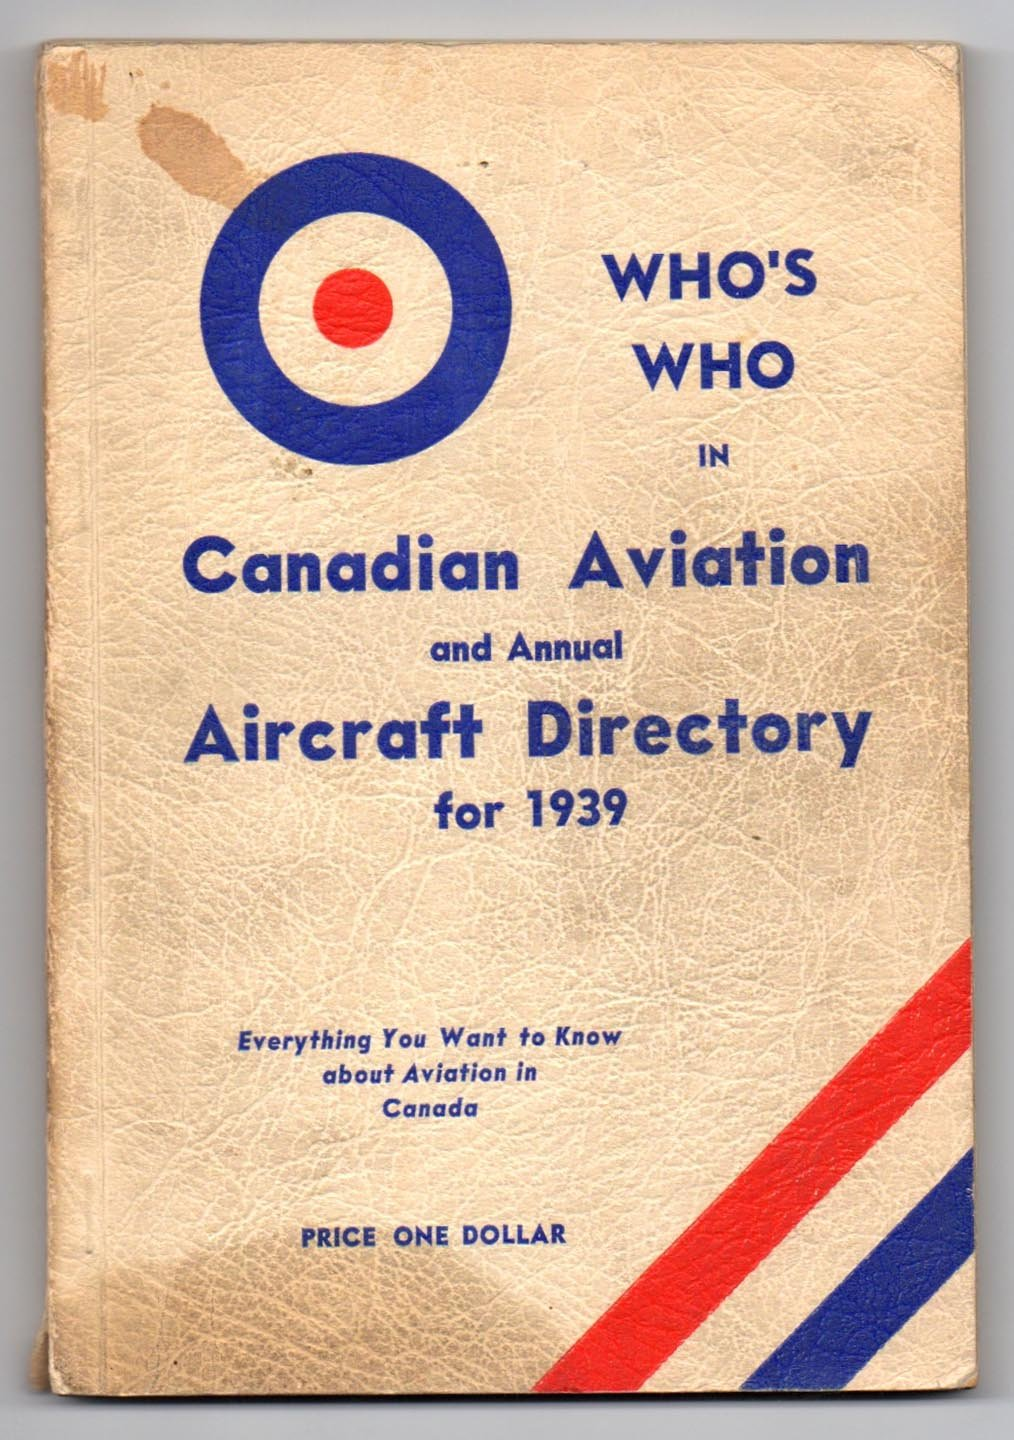 Who's Who in Canadian Aviation and Annual Aircraft Directory for 1939